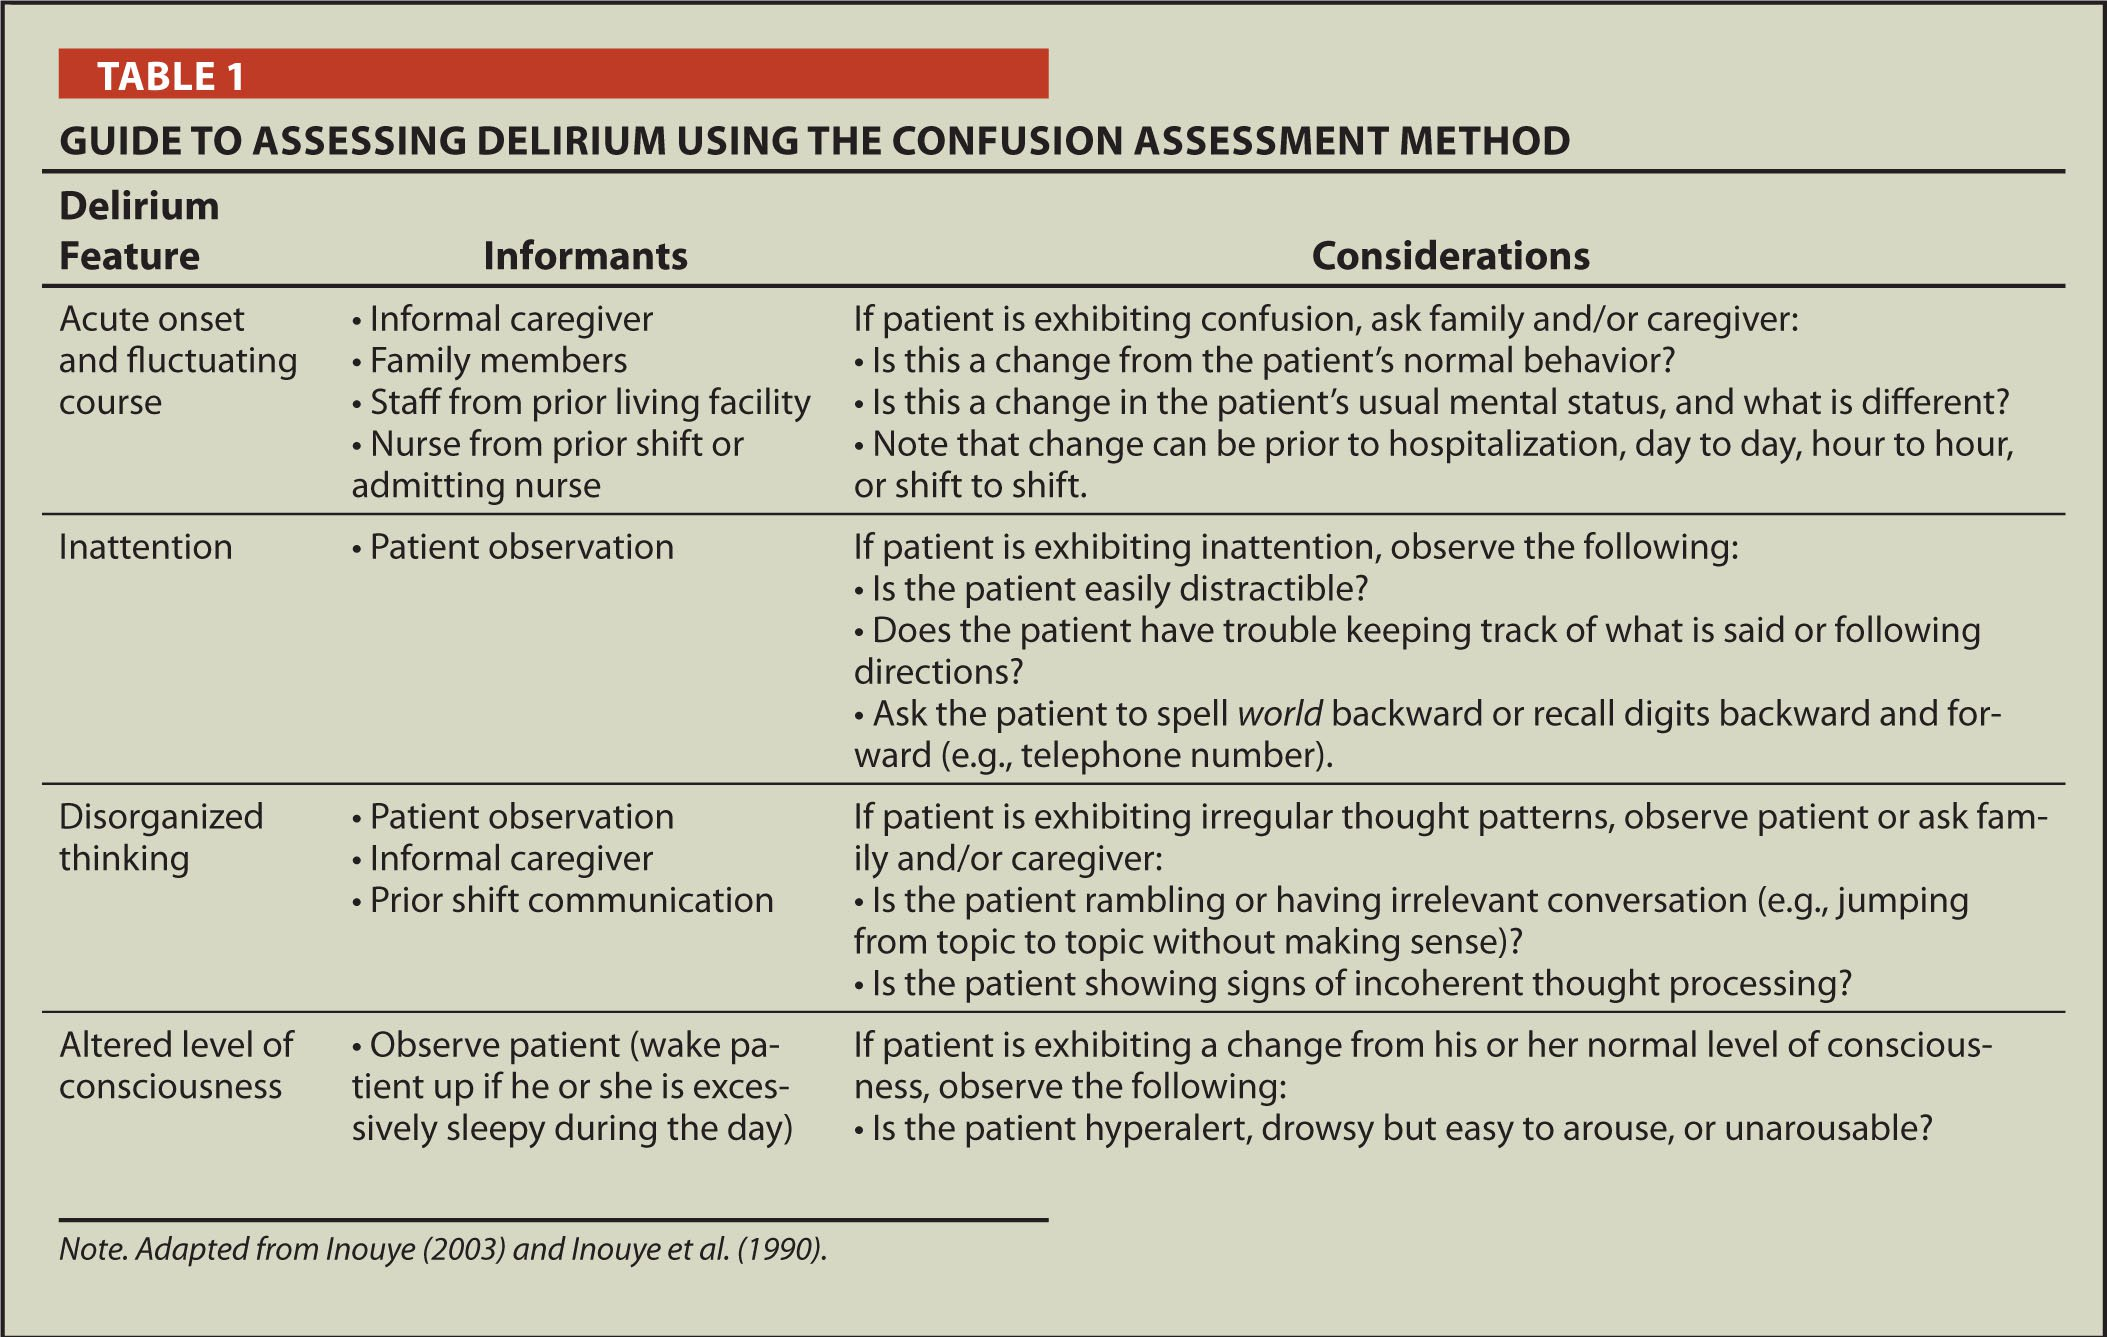 Guide to Assessing Delirium Using the Confusion Assessment Method